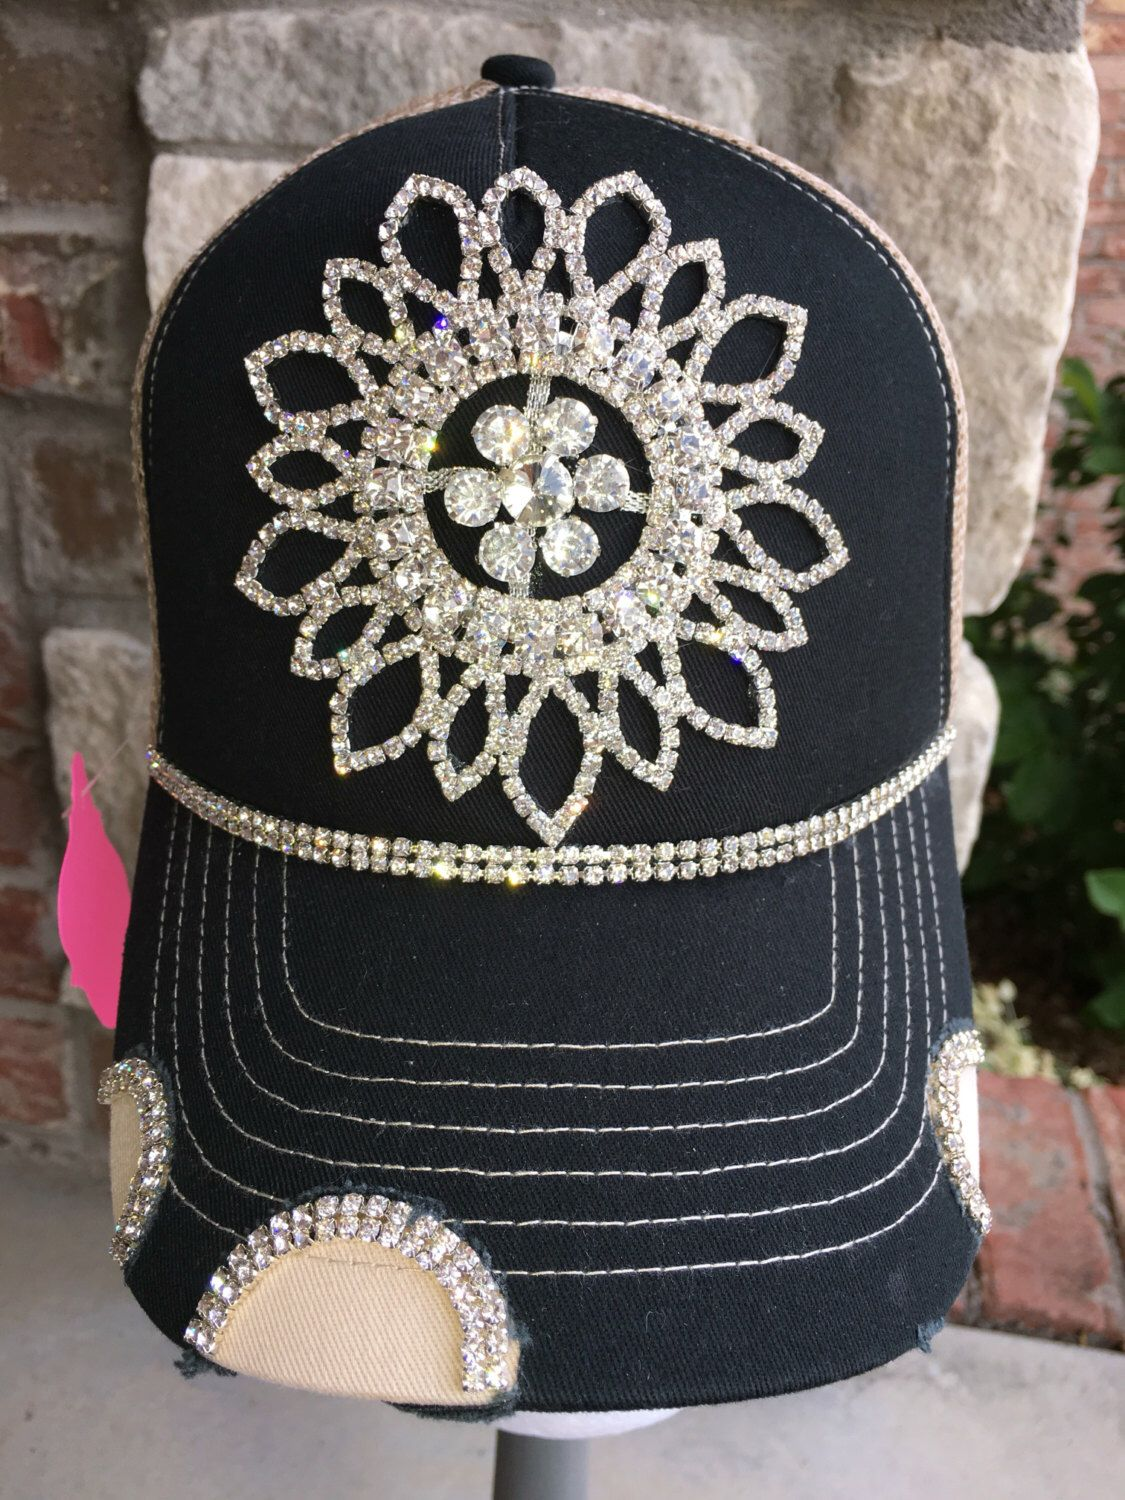 41a78c35c6c Baseball Hats · Hats For Women · Ladies Fashion · Super Cute · A personal  favorite from my Etsy shop https   www.etsy.com